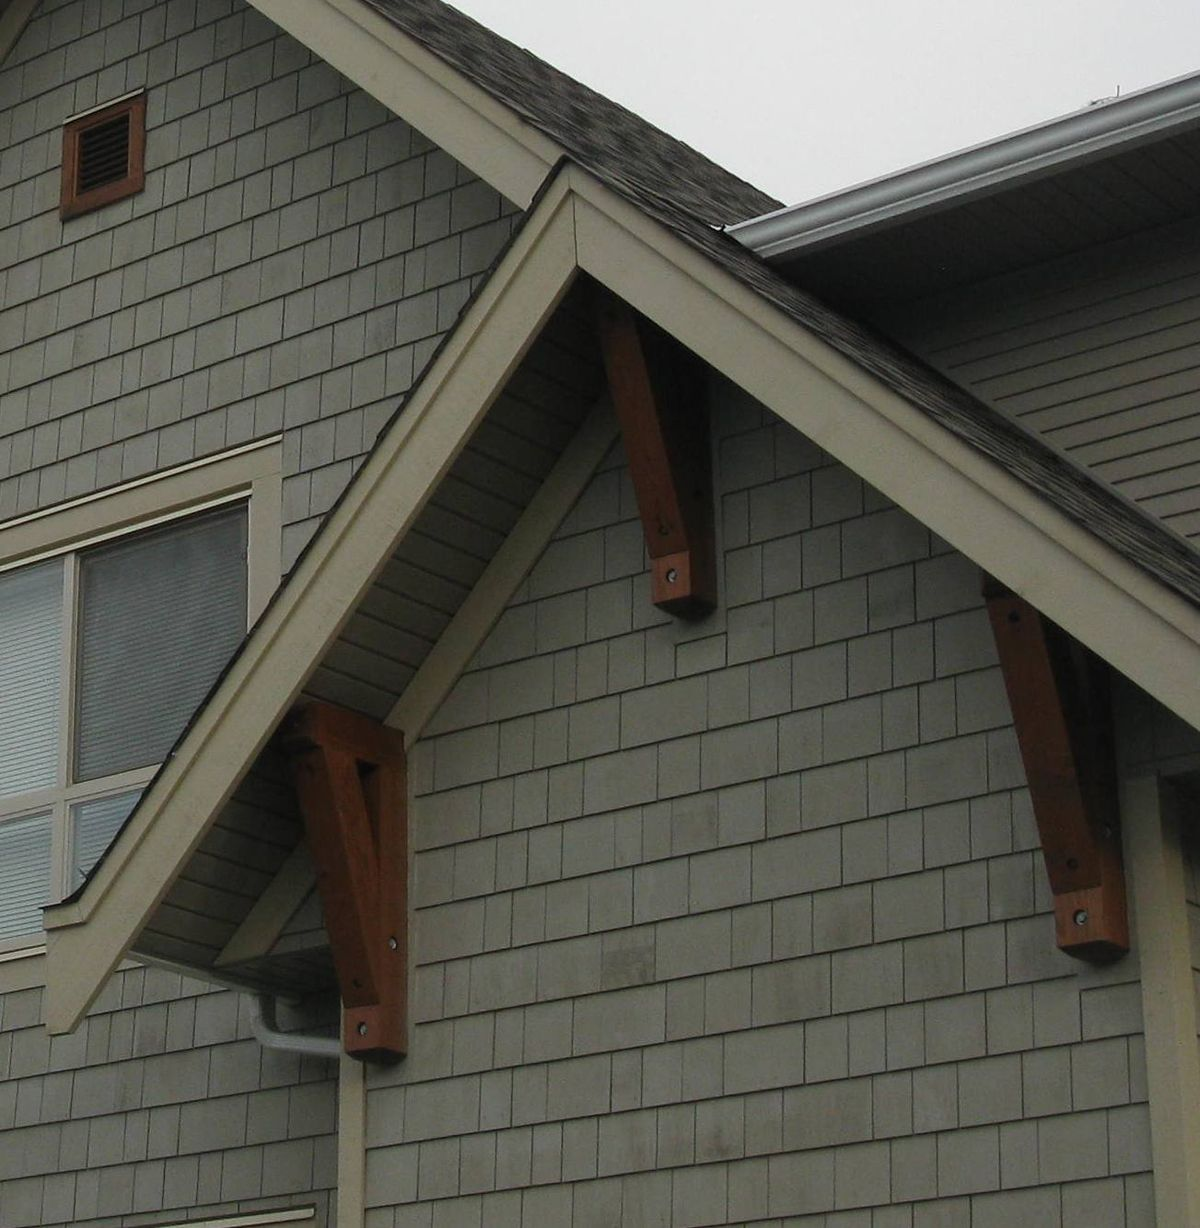 Western Red Cedar Gable Vents And Decorative Shutters Made In Canada Cottage Exterior Home Exterior Makeover House Paint Exterior